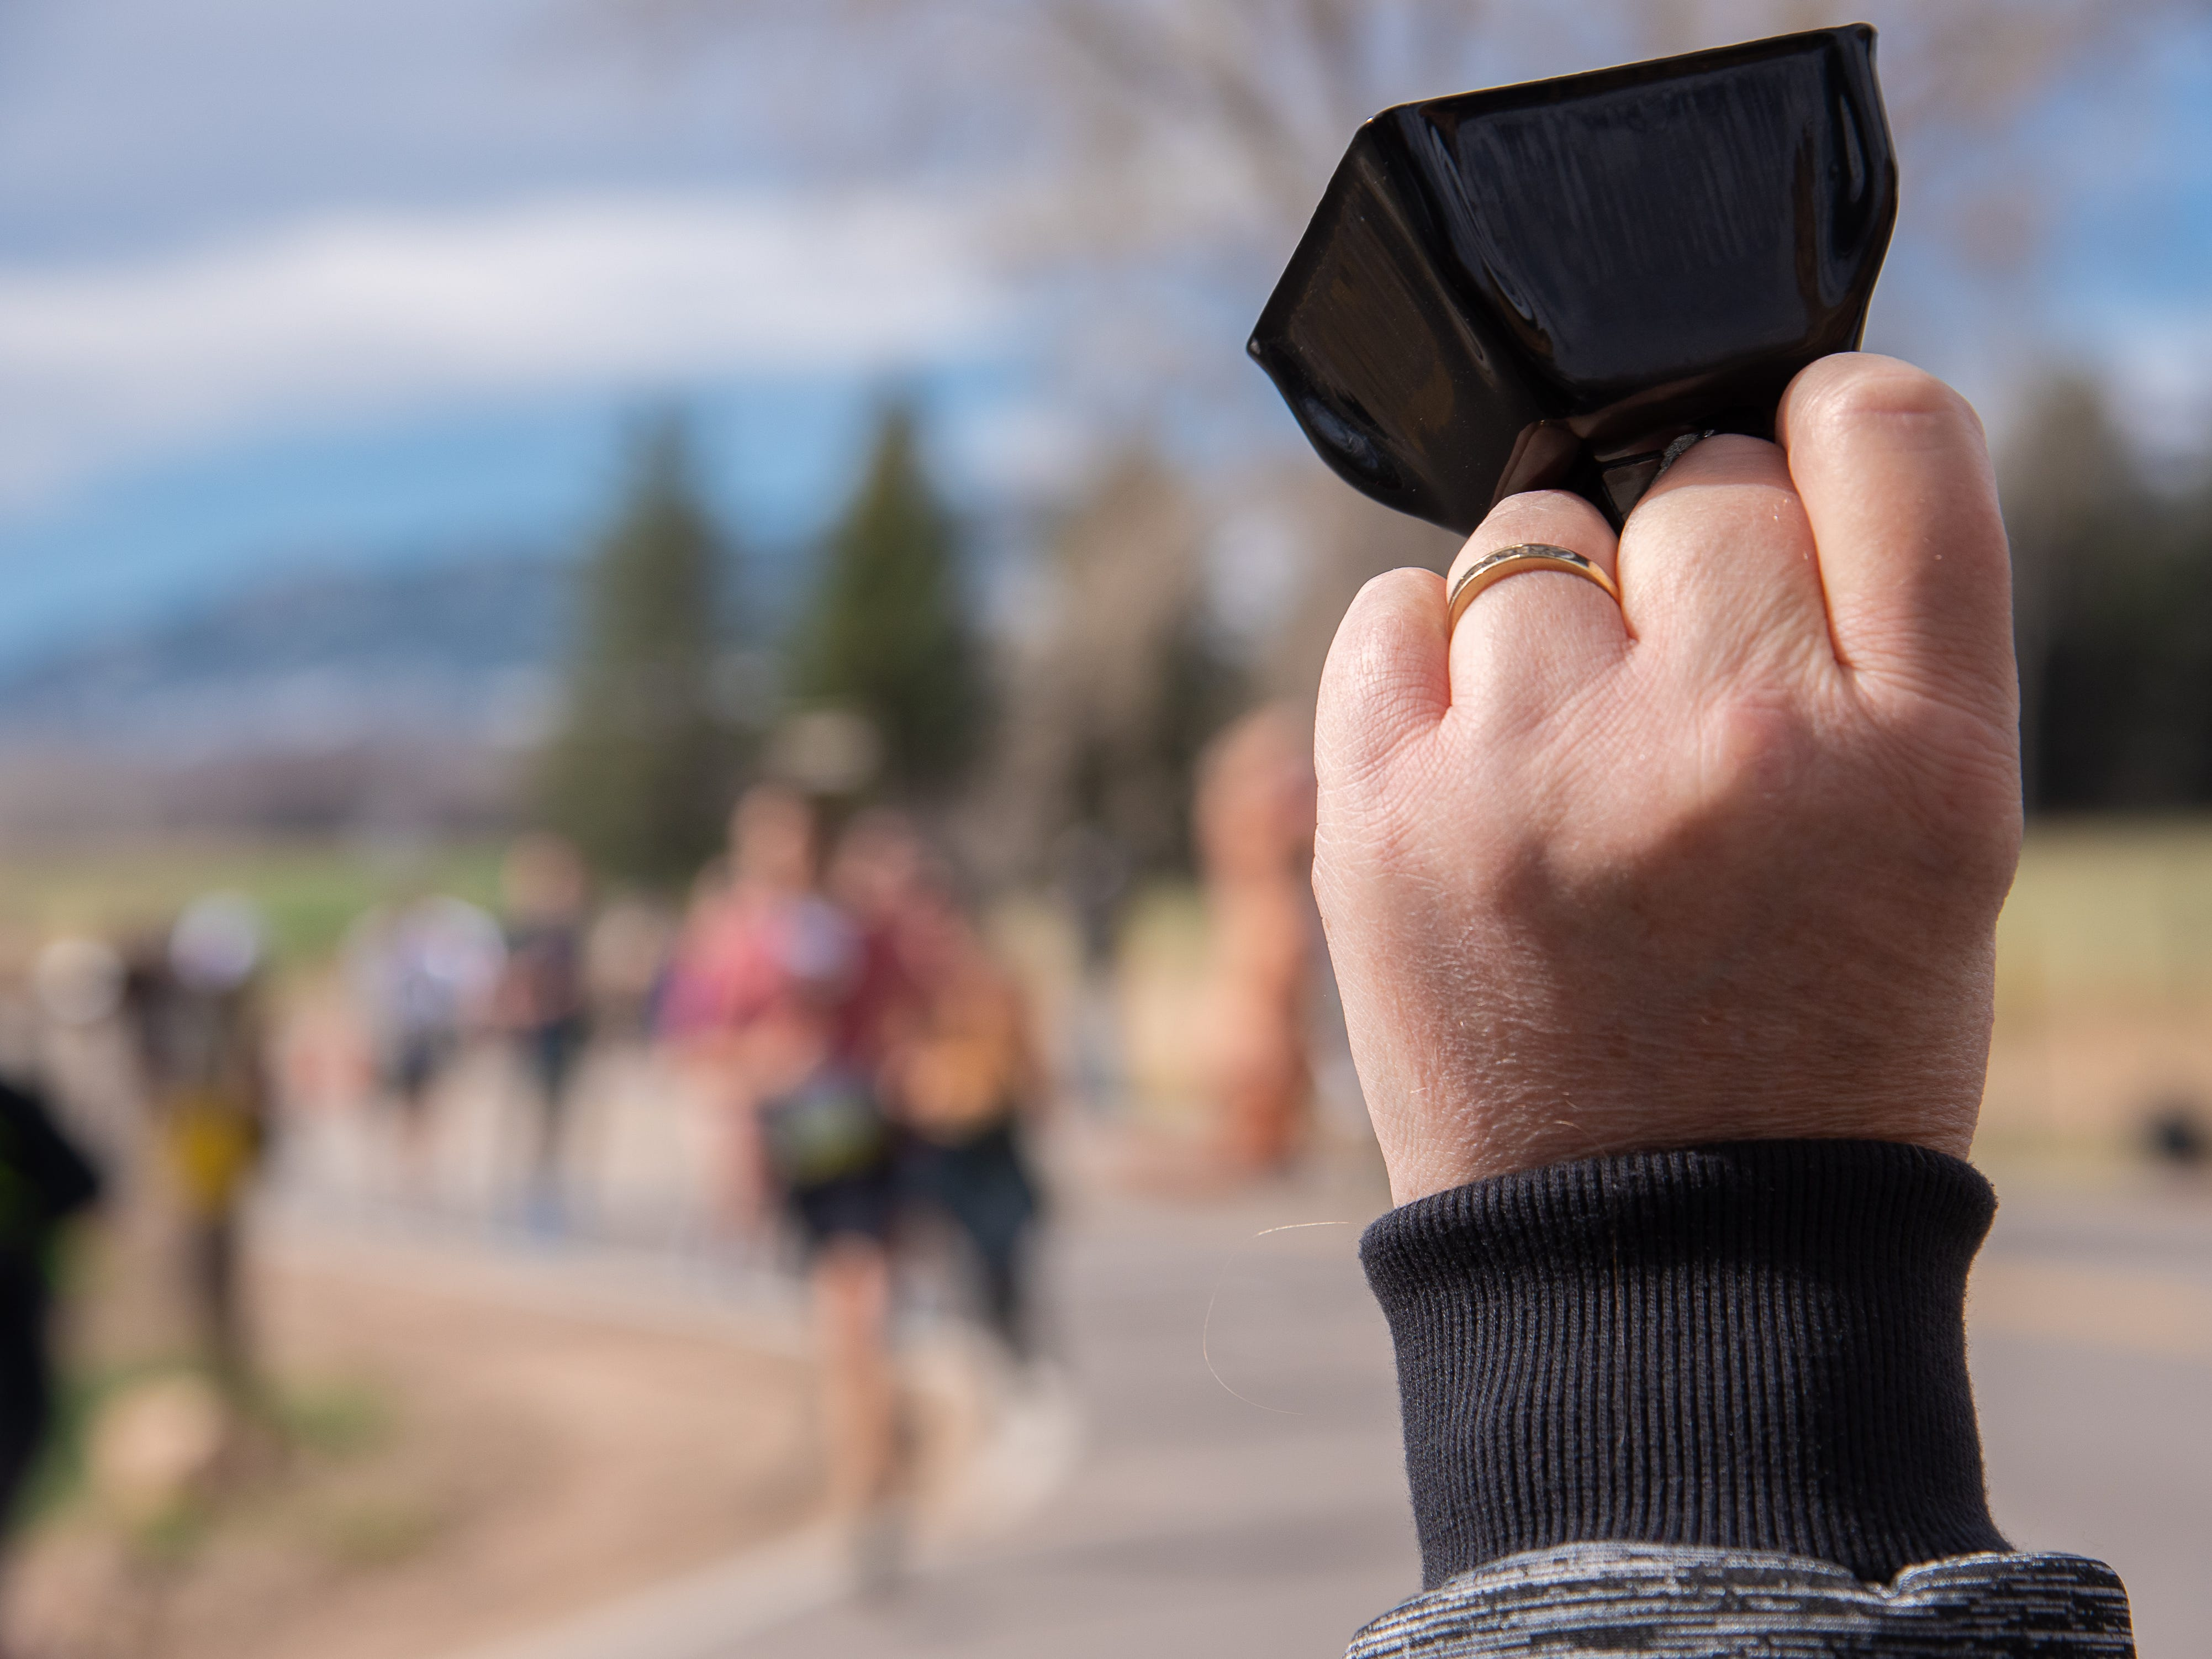 A spectator rings a cowbell in support of race participants near Bingham Hill Road during the Horsetooth Half Marathon on Sunday, April 14, 2019, in Fort Collins, Colo.